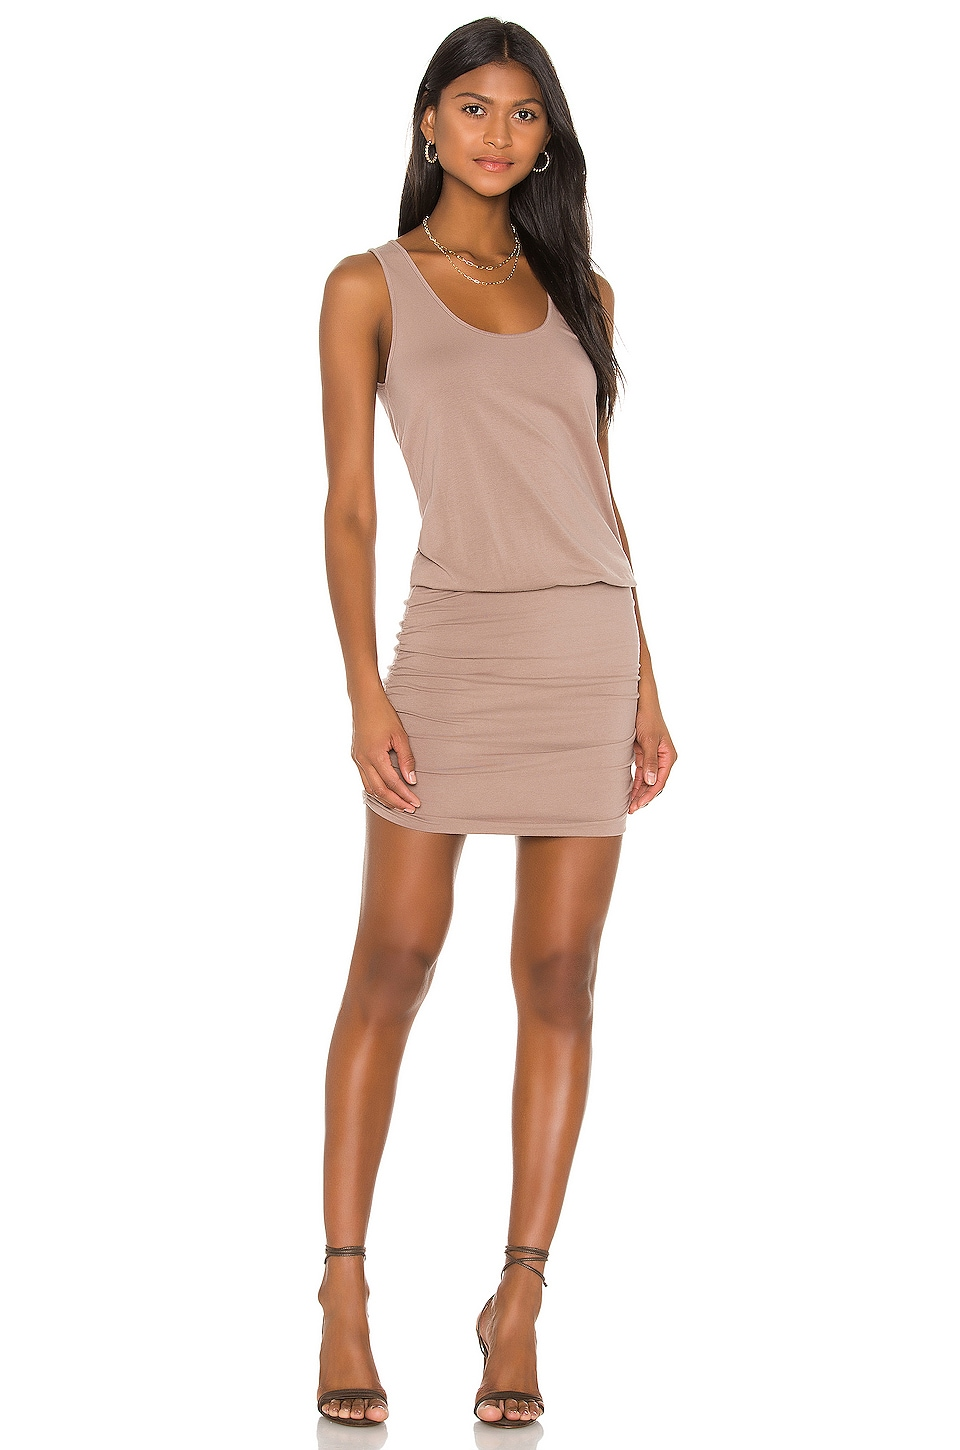 Draped Modal Jersey Mini Dress             Bobi                                                                                                       CA$ 93.84 2